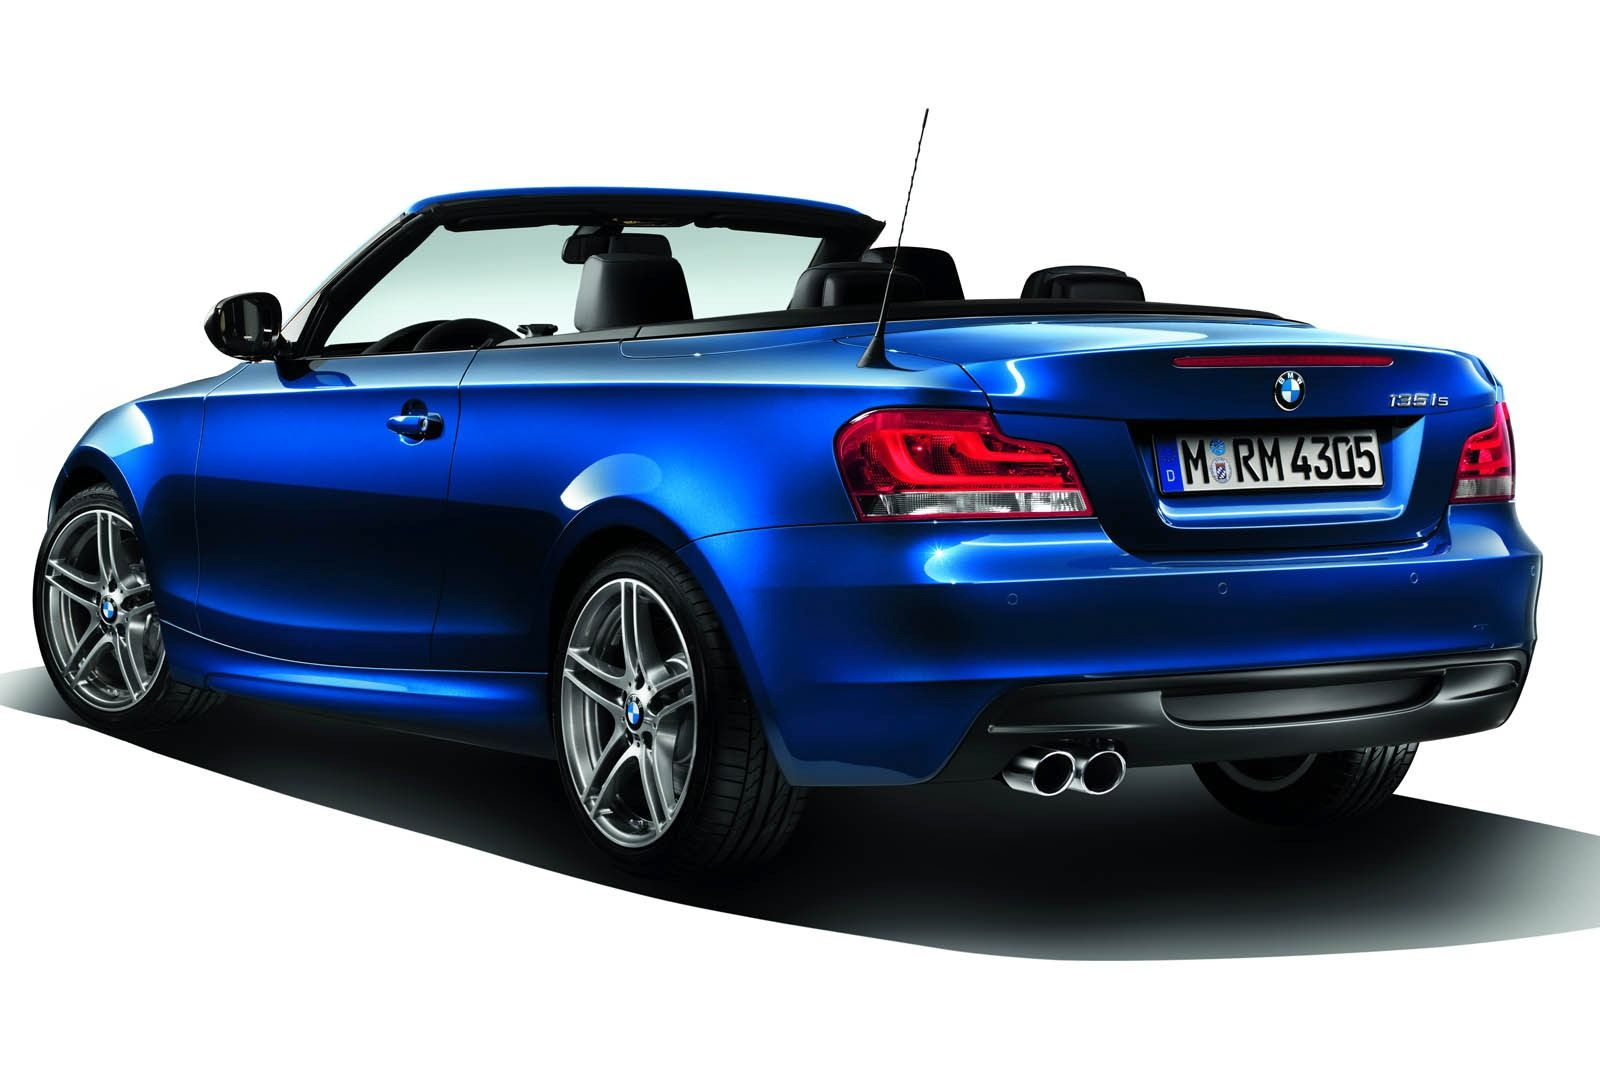 BMW 1 series 135is 2013 photo - 7